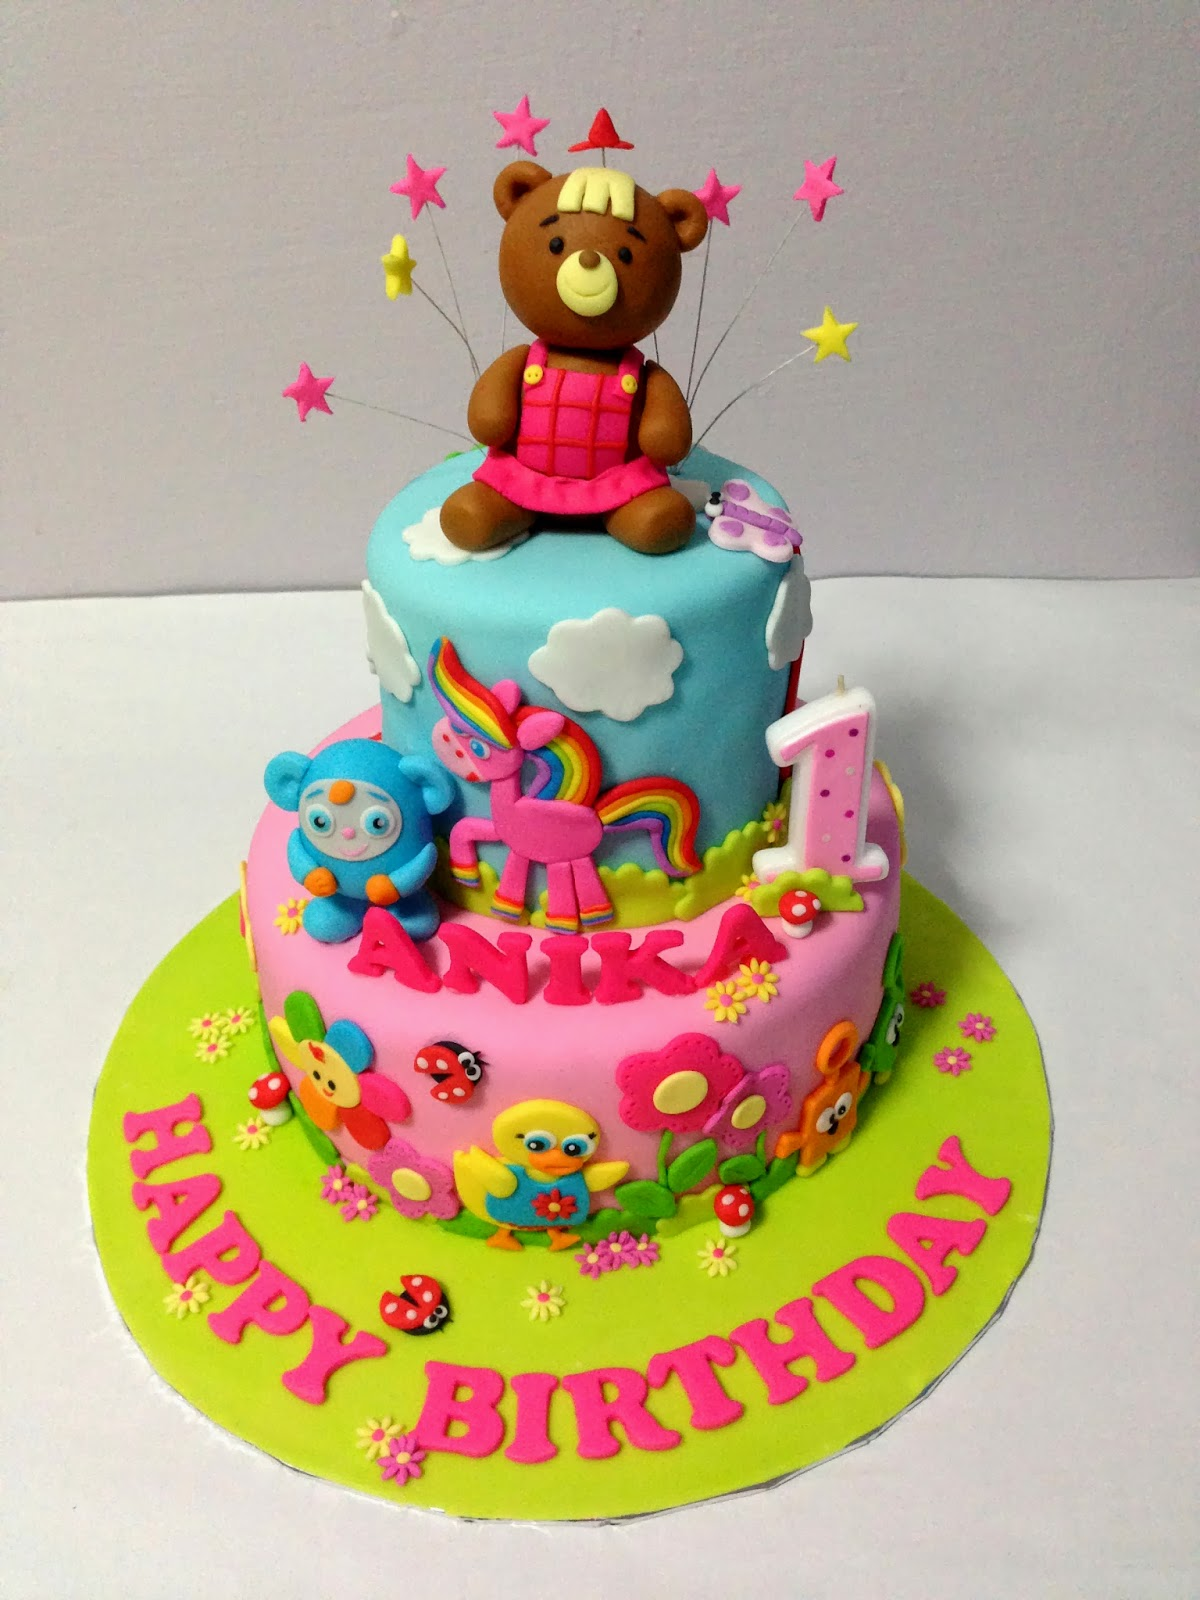 Oven Creations: Happy 1st Birthday Anika